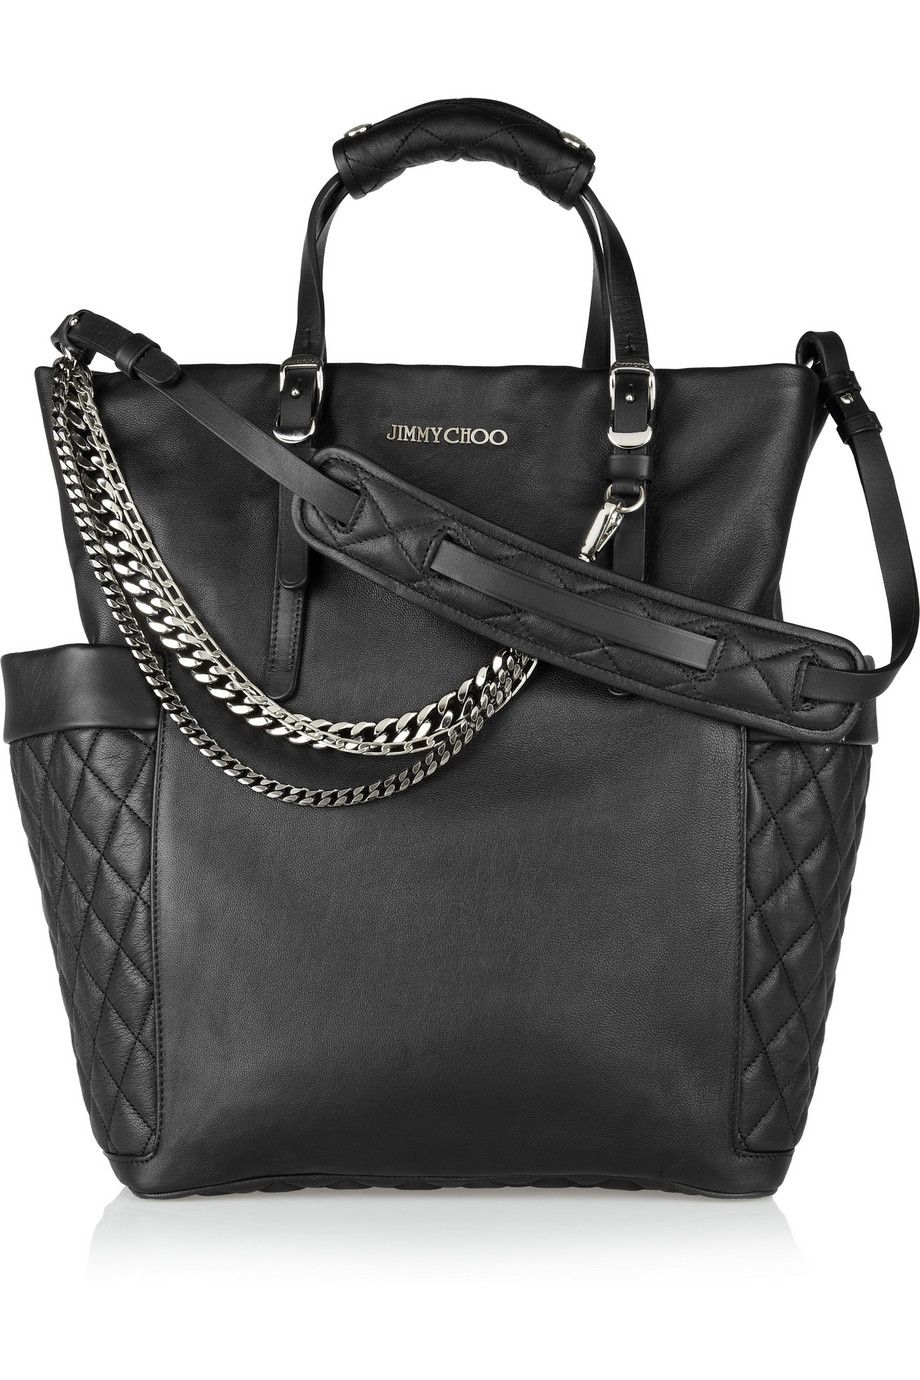 509d580df2 Blare chain-embellished leather tote. Jimmy Choo handbags